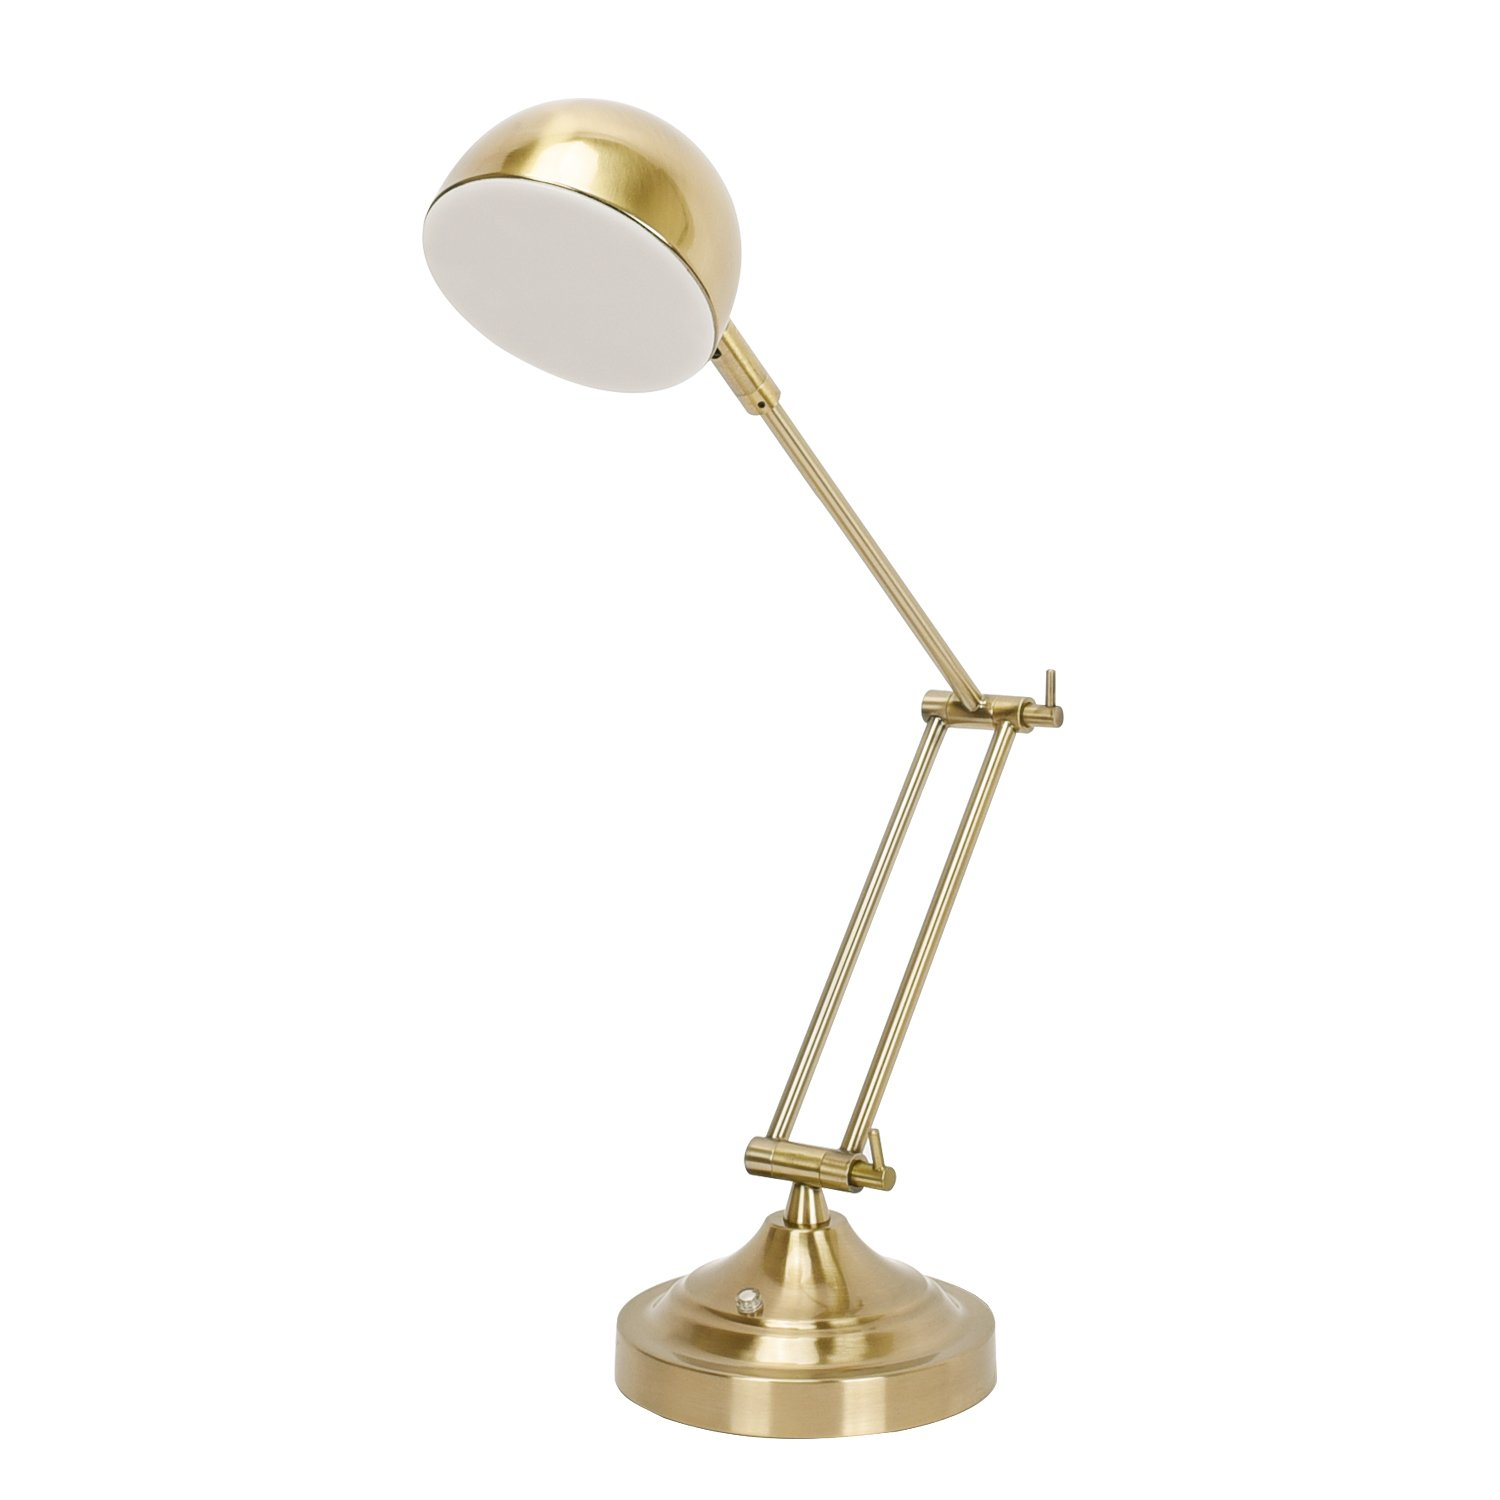 SUNLLIPE LED Swing Arm Desk Lamp 7W Touch Control Stepless Dimmable Eye Caring Table Reading Task Lamp with Rotatable Head and Height Adjustable (Antique Brass Finish)